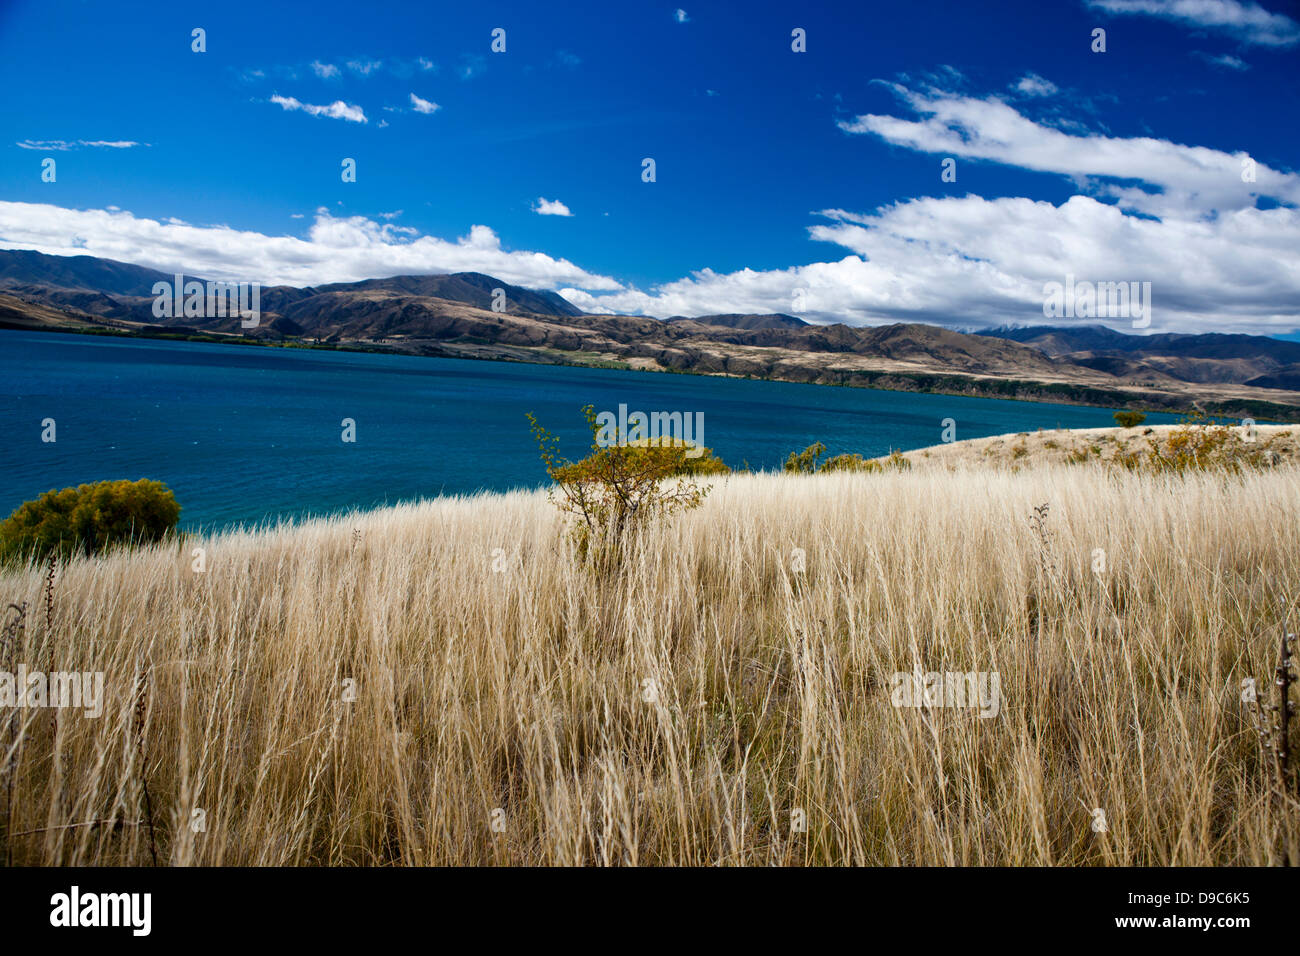 Mountainous landscape with hills and vegetation, near Cromwell, Central Otago, South Island, New Zealand - Stock Image